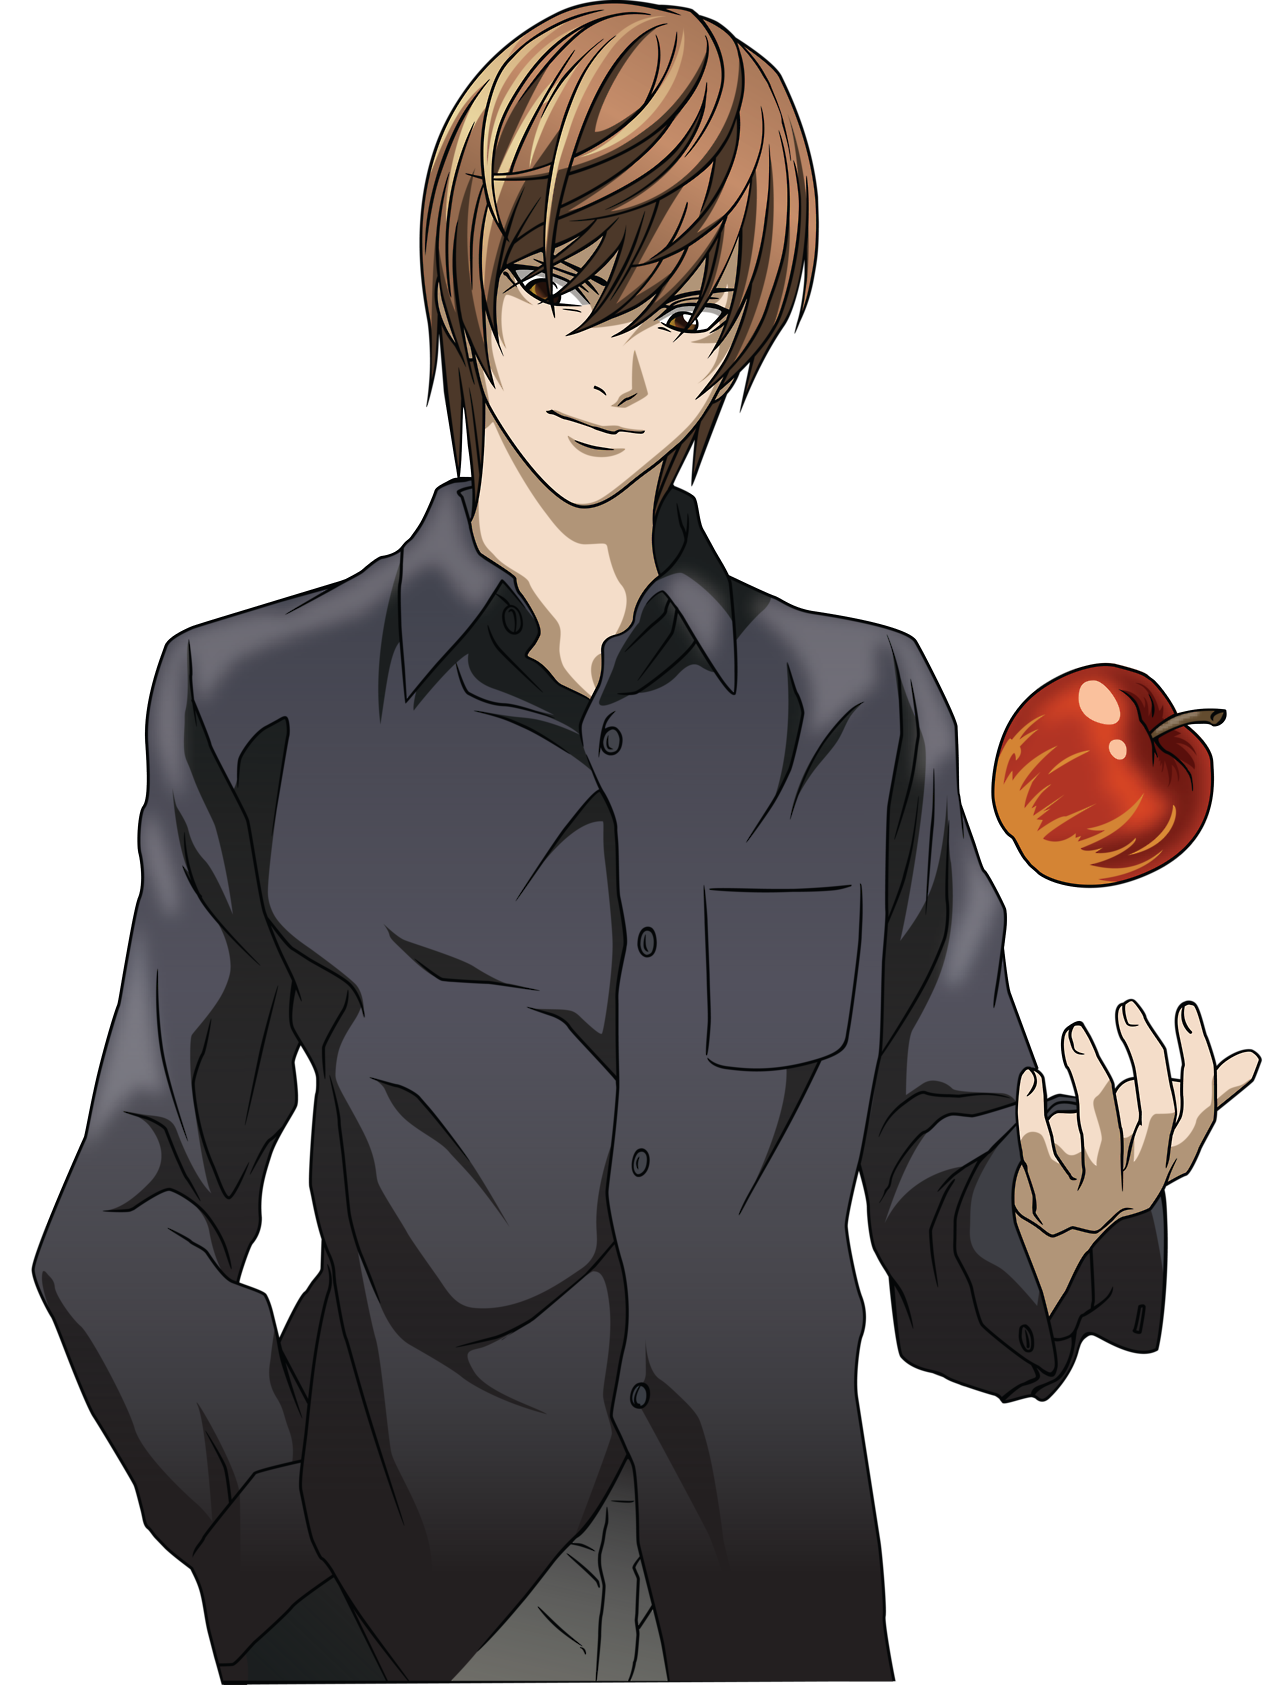 Light Yagami - Light Yagami Photo (36448734) - Fanpop